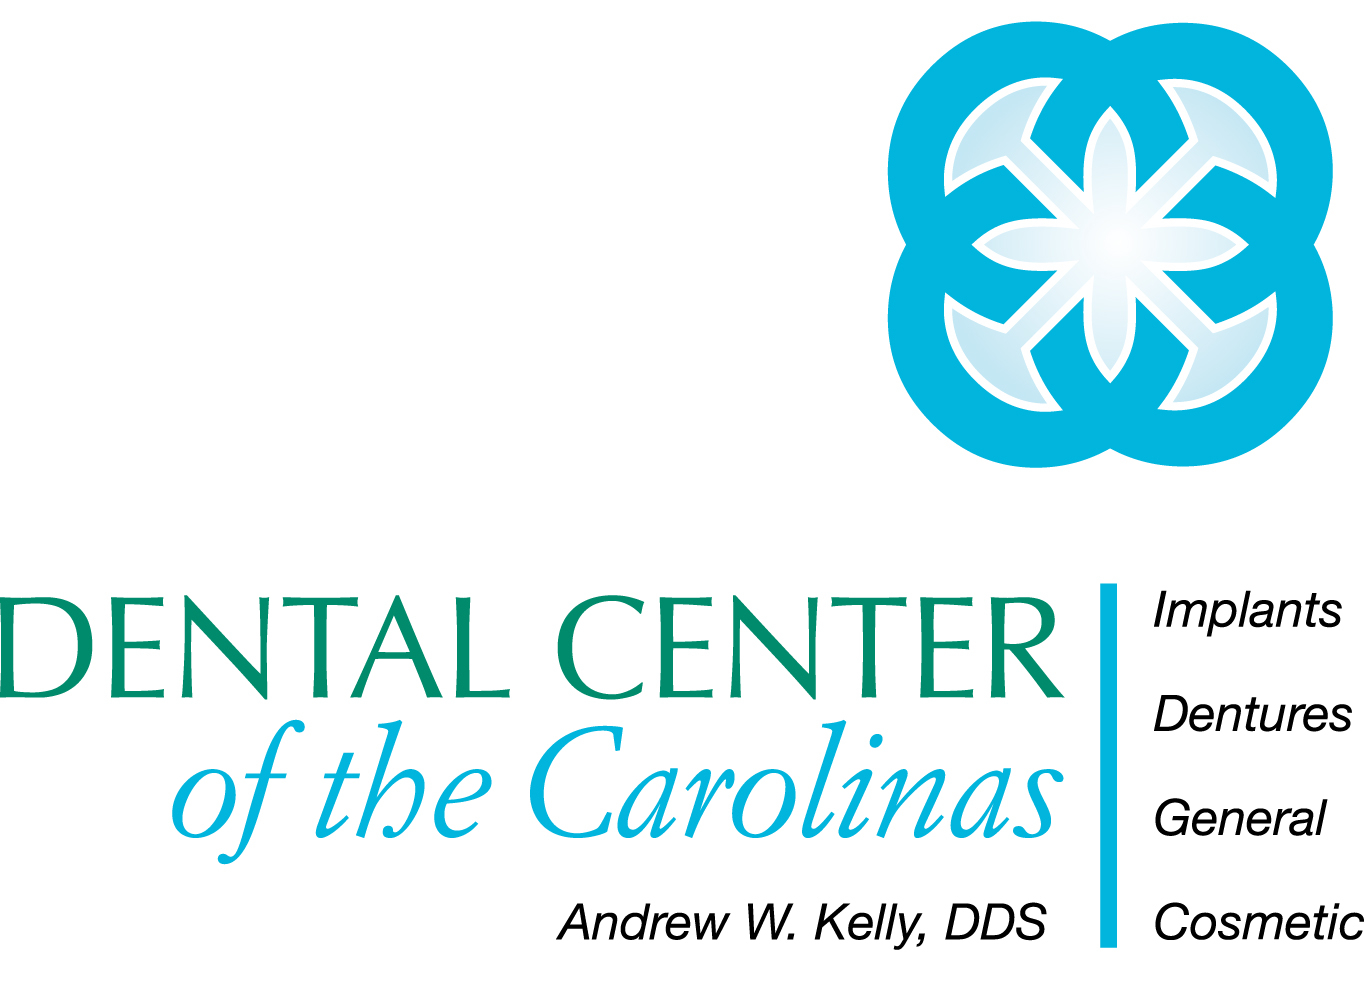 Visit The Dental Center of the Carolinas To Enjoy General Dentistry and Implant Services Alongside Amazing Deals For New Patients